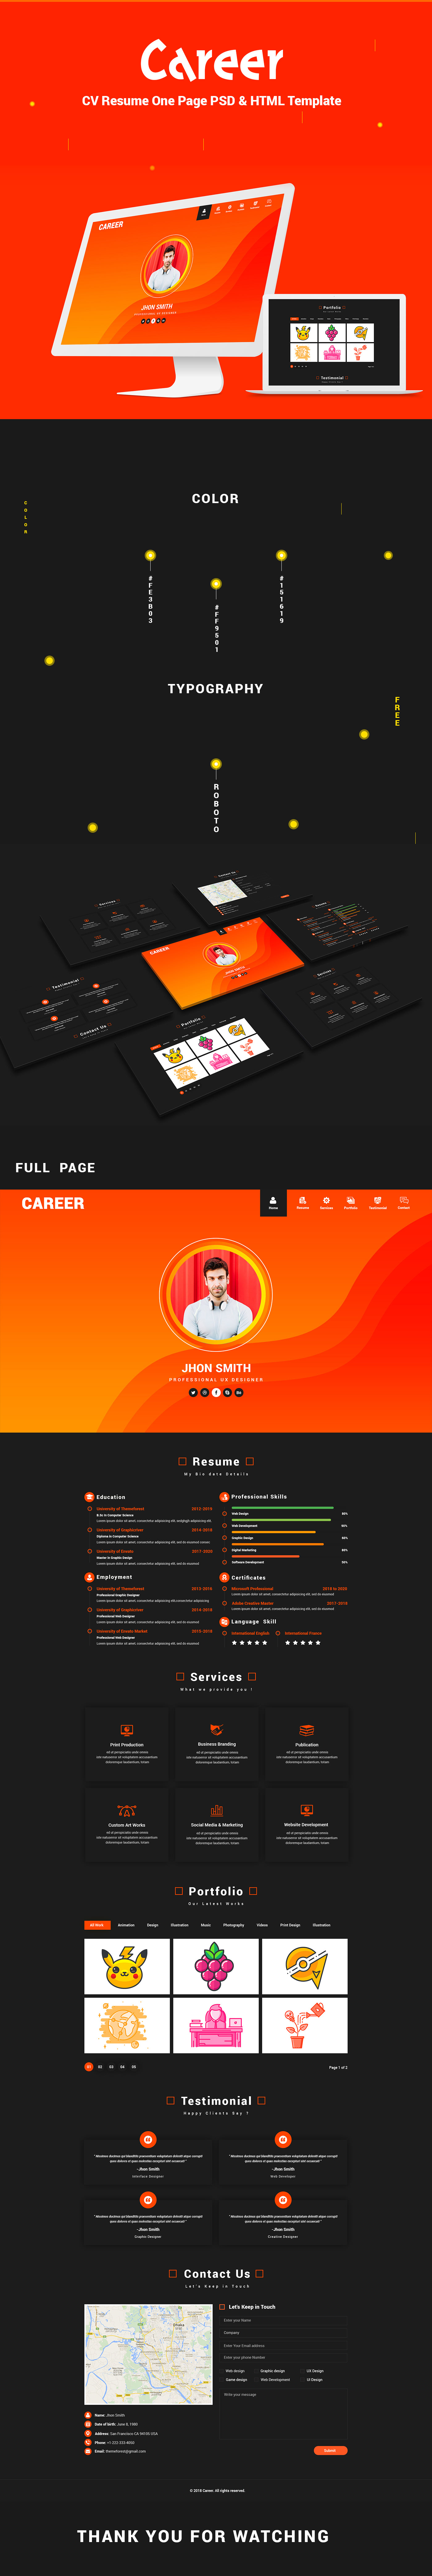 Career - CV Resume One Page HTML Template